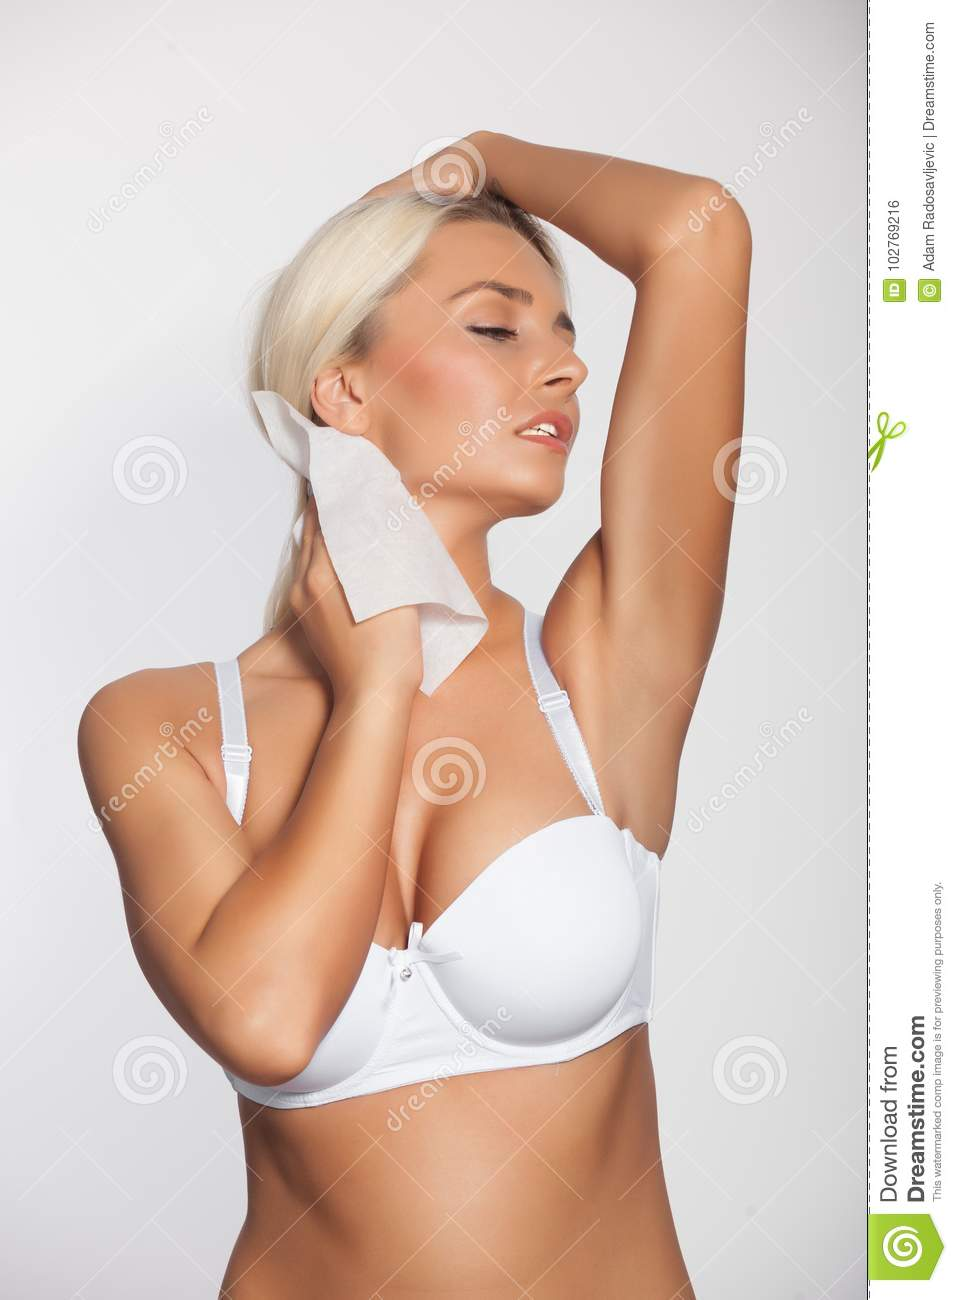 Woman Cleaning Neck With Wet Wipes Stock Photo - Image of body ... 9a60495bb